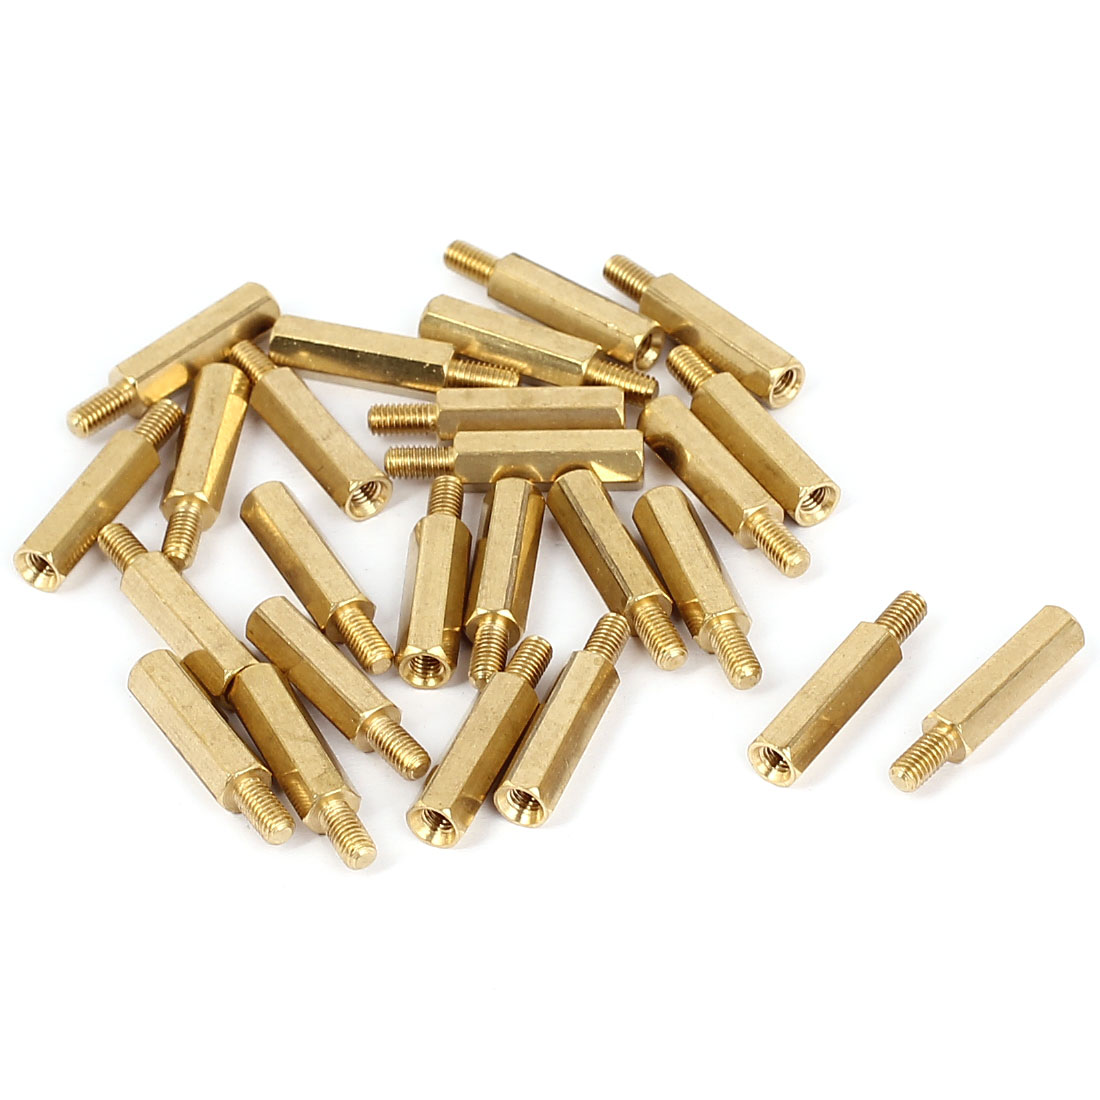 M3x16+6mm Female/Male Thread Brass Hex Standoff Pillar Spacer Coupler Nut 25pcs